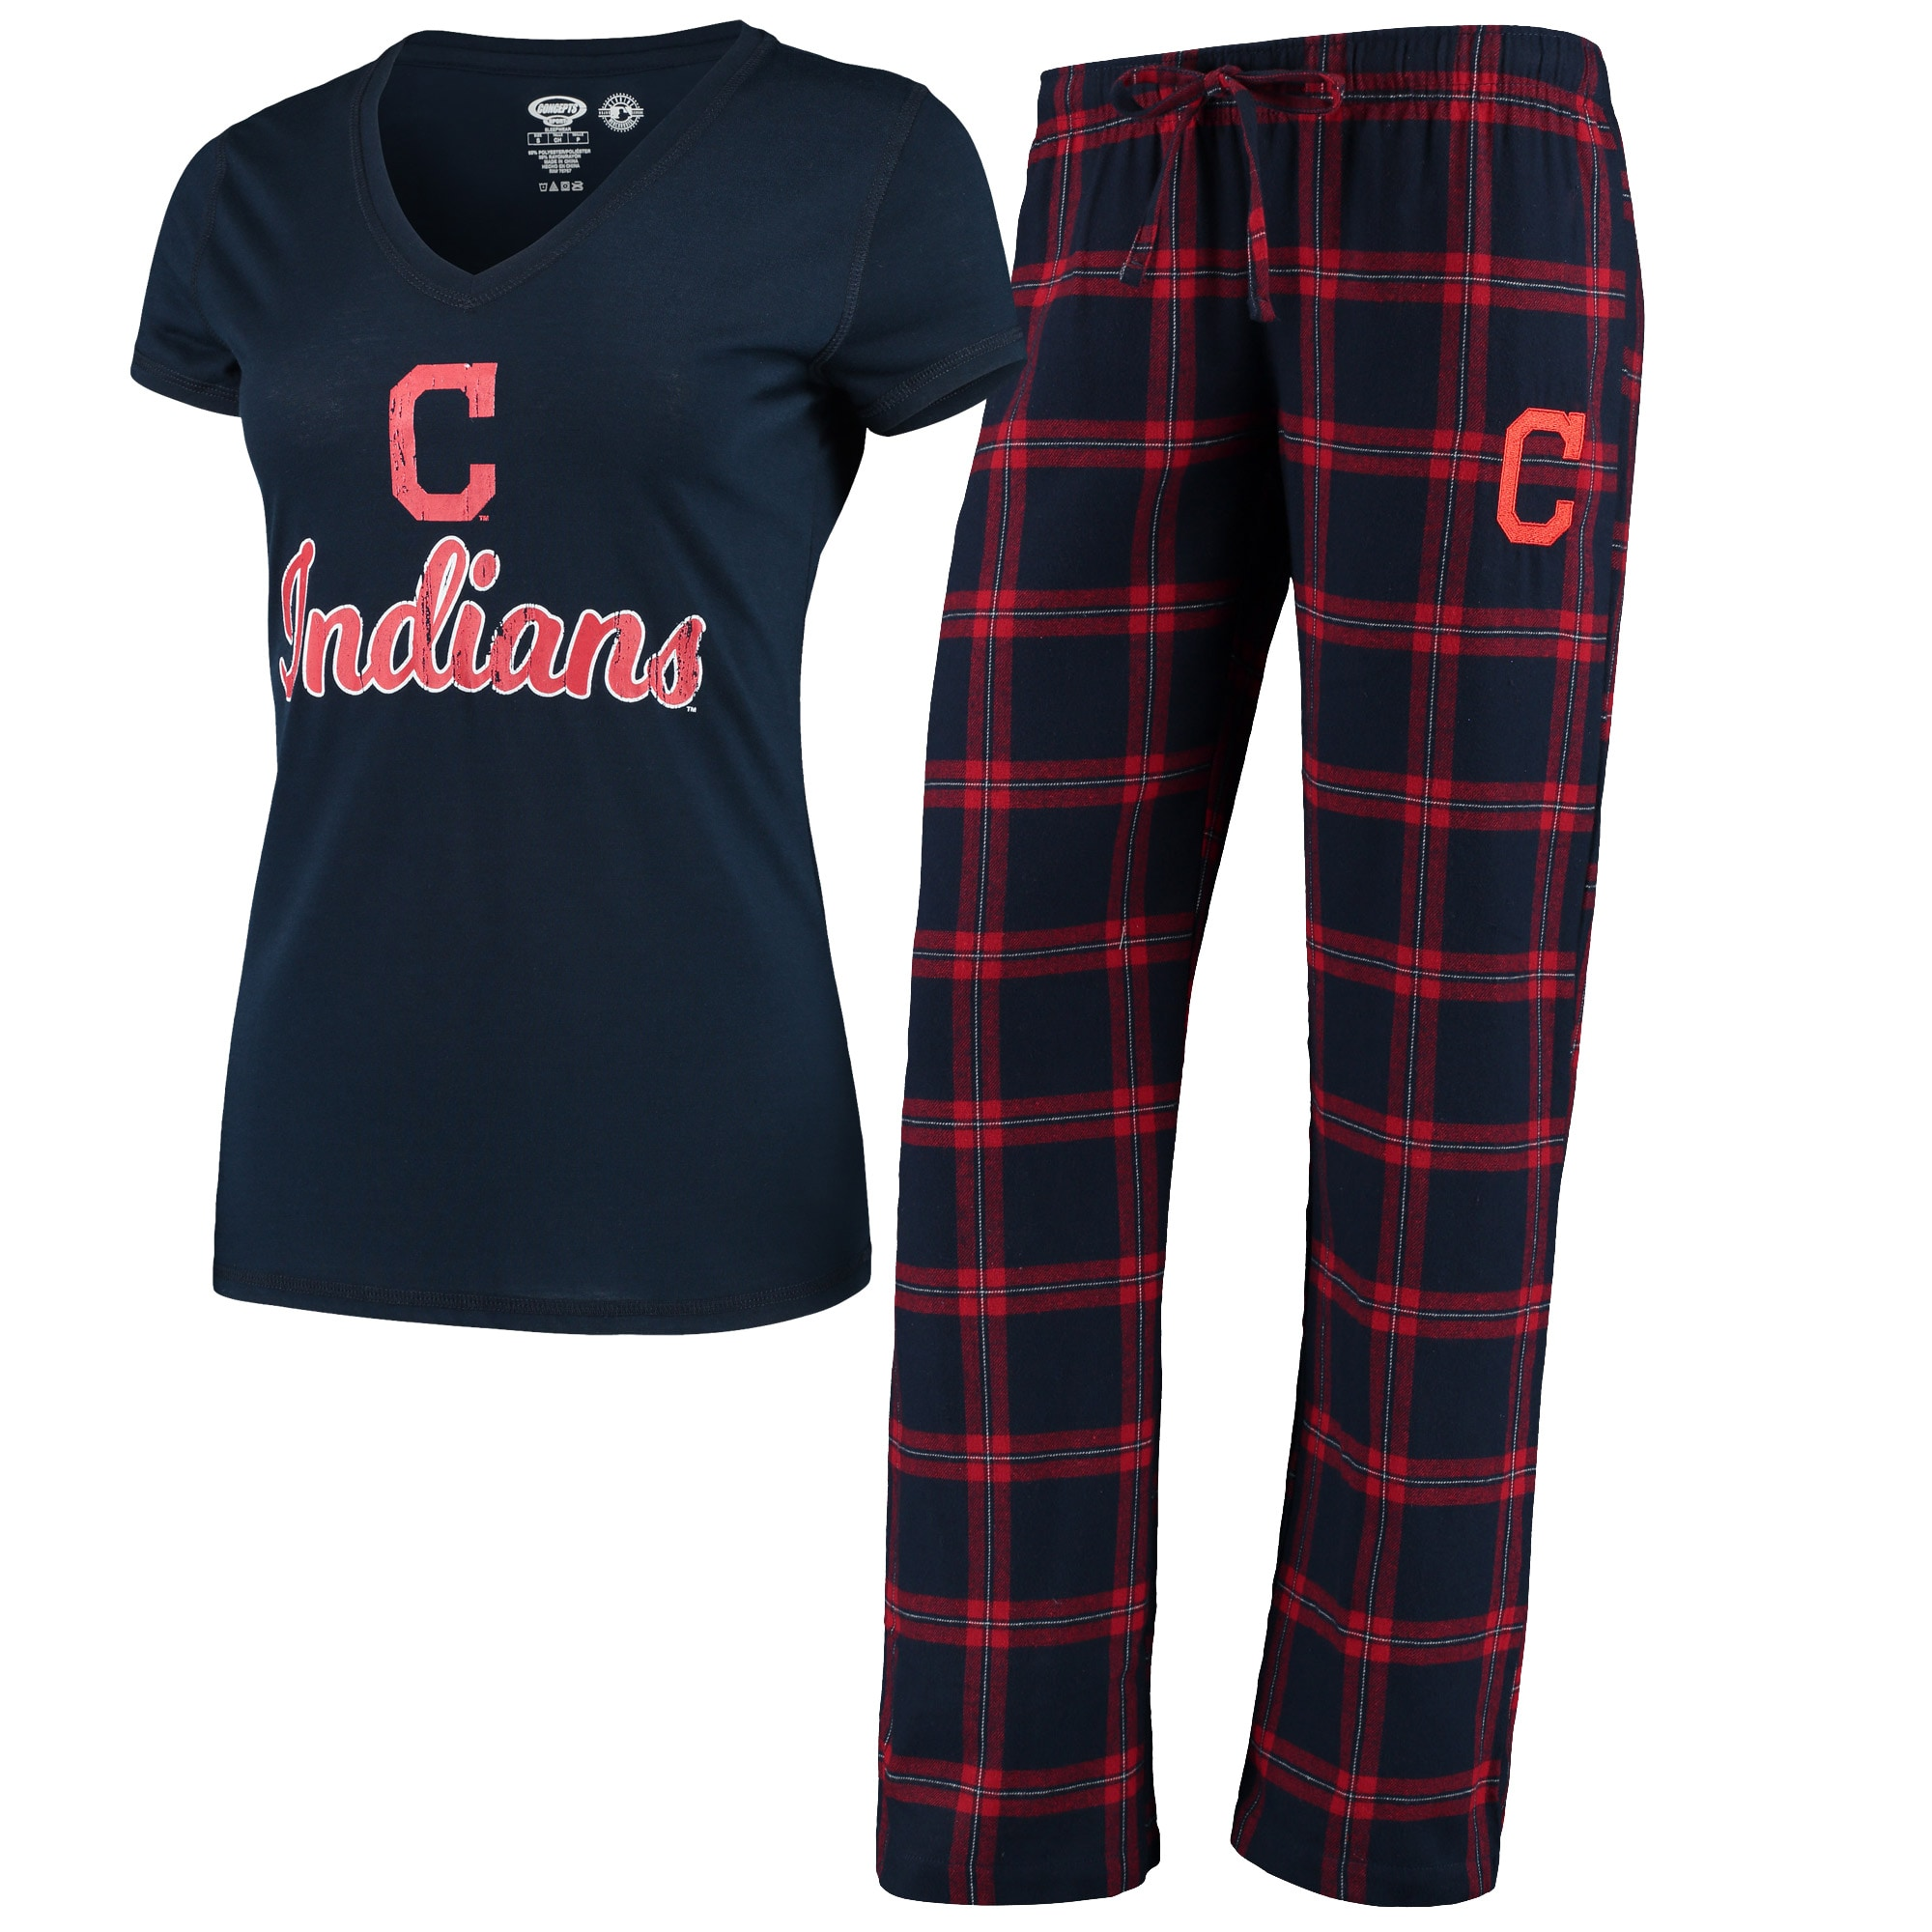 Cleveland Indians Concepts Sport Women's Troupe V-Neck T-Shirt & Pants Sleep Set - Navy/Red